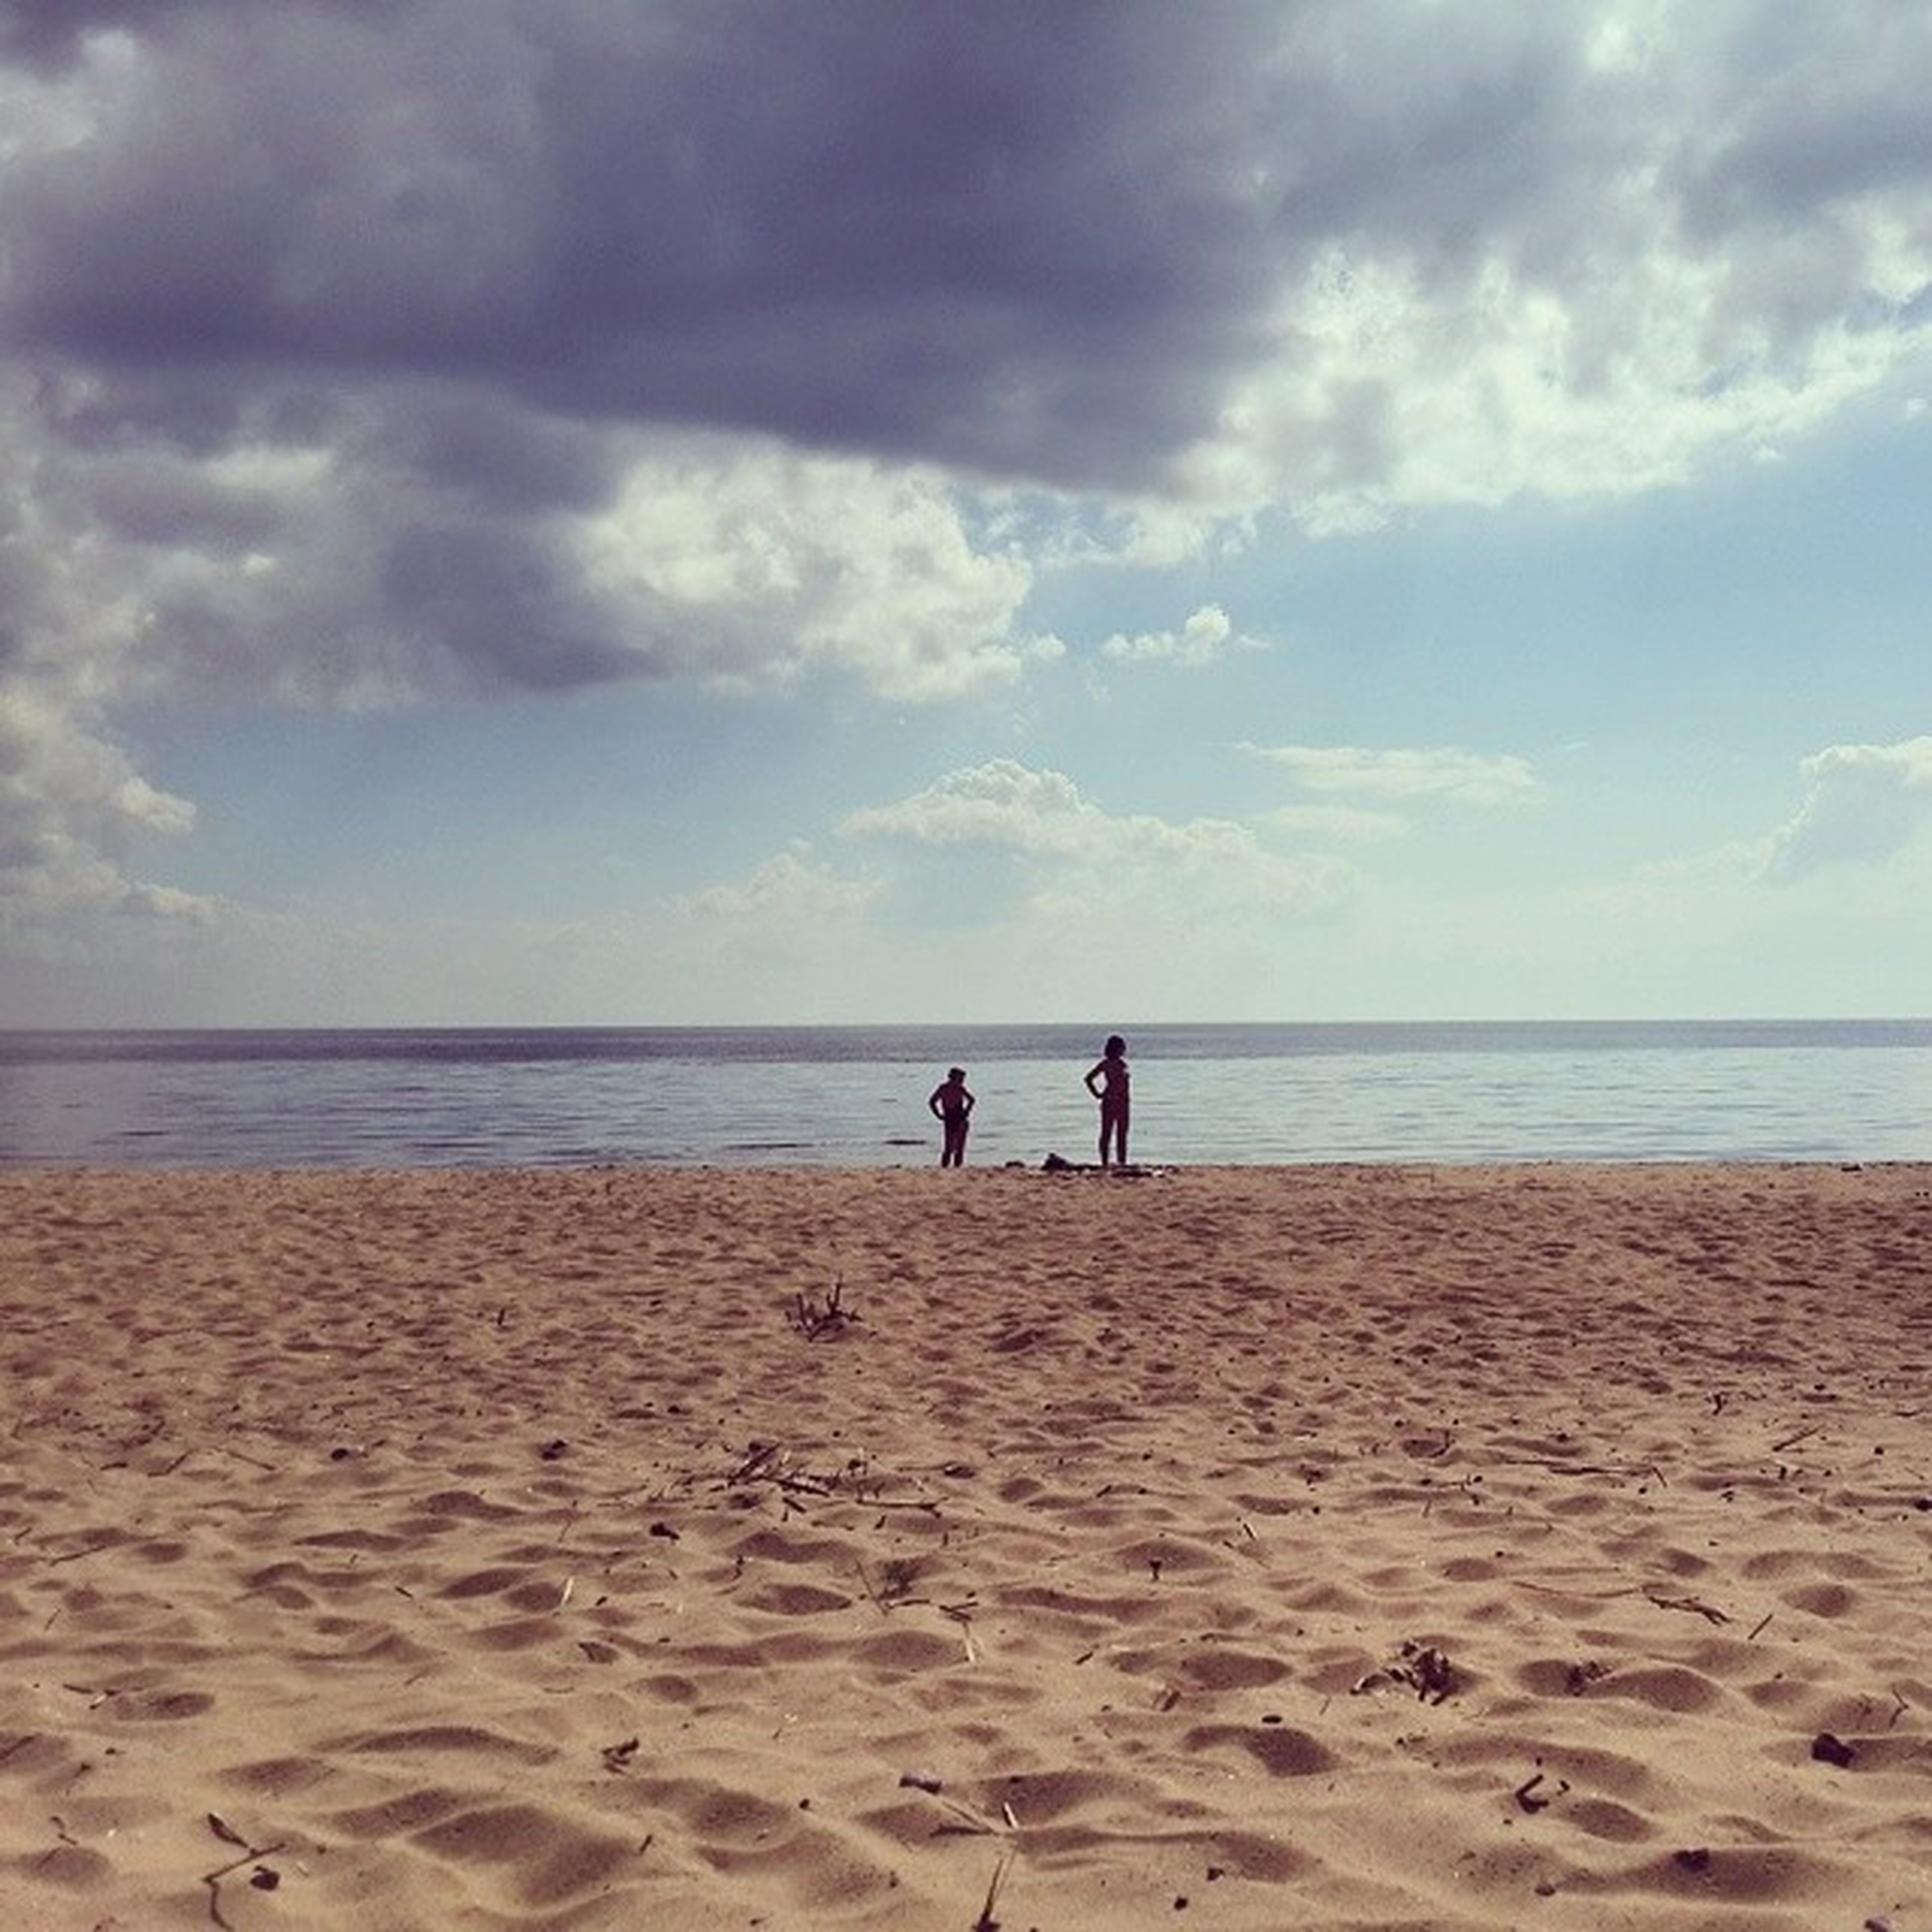 beach, sea, horizon over water, sand, sky, shore, water, tranquility, cloud - sky, tranquil scene, scenics, leisure activity, lifestyles, beauty in nature, vacations, nature, cloud